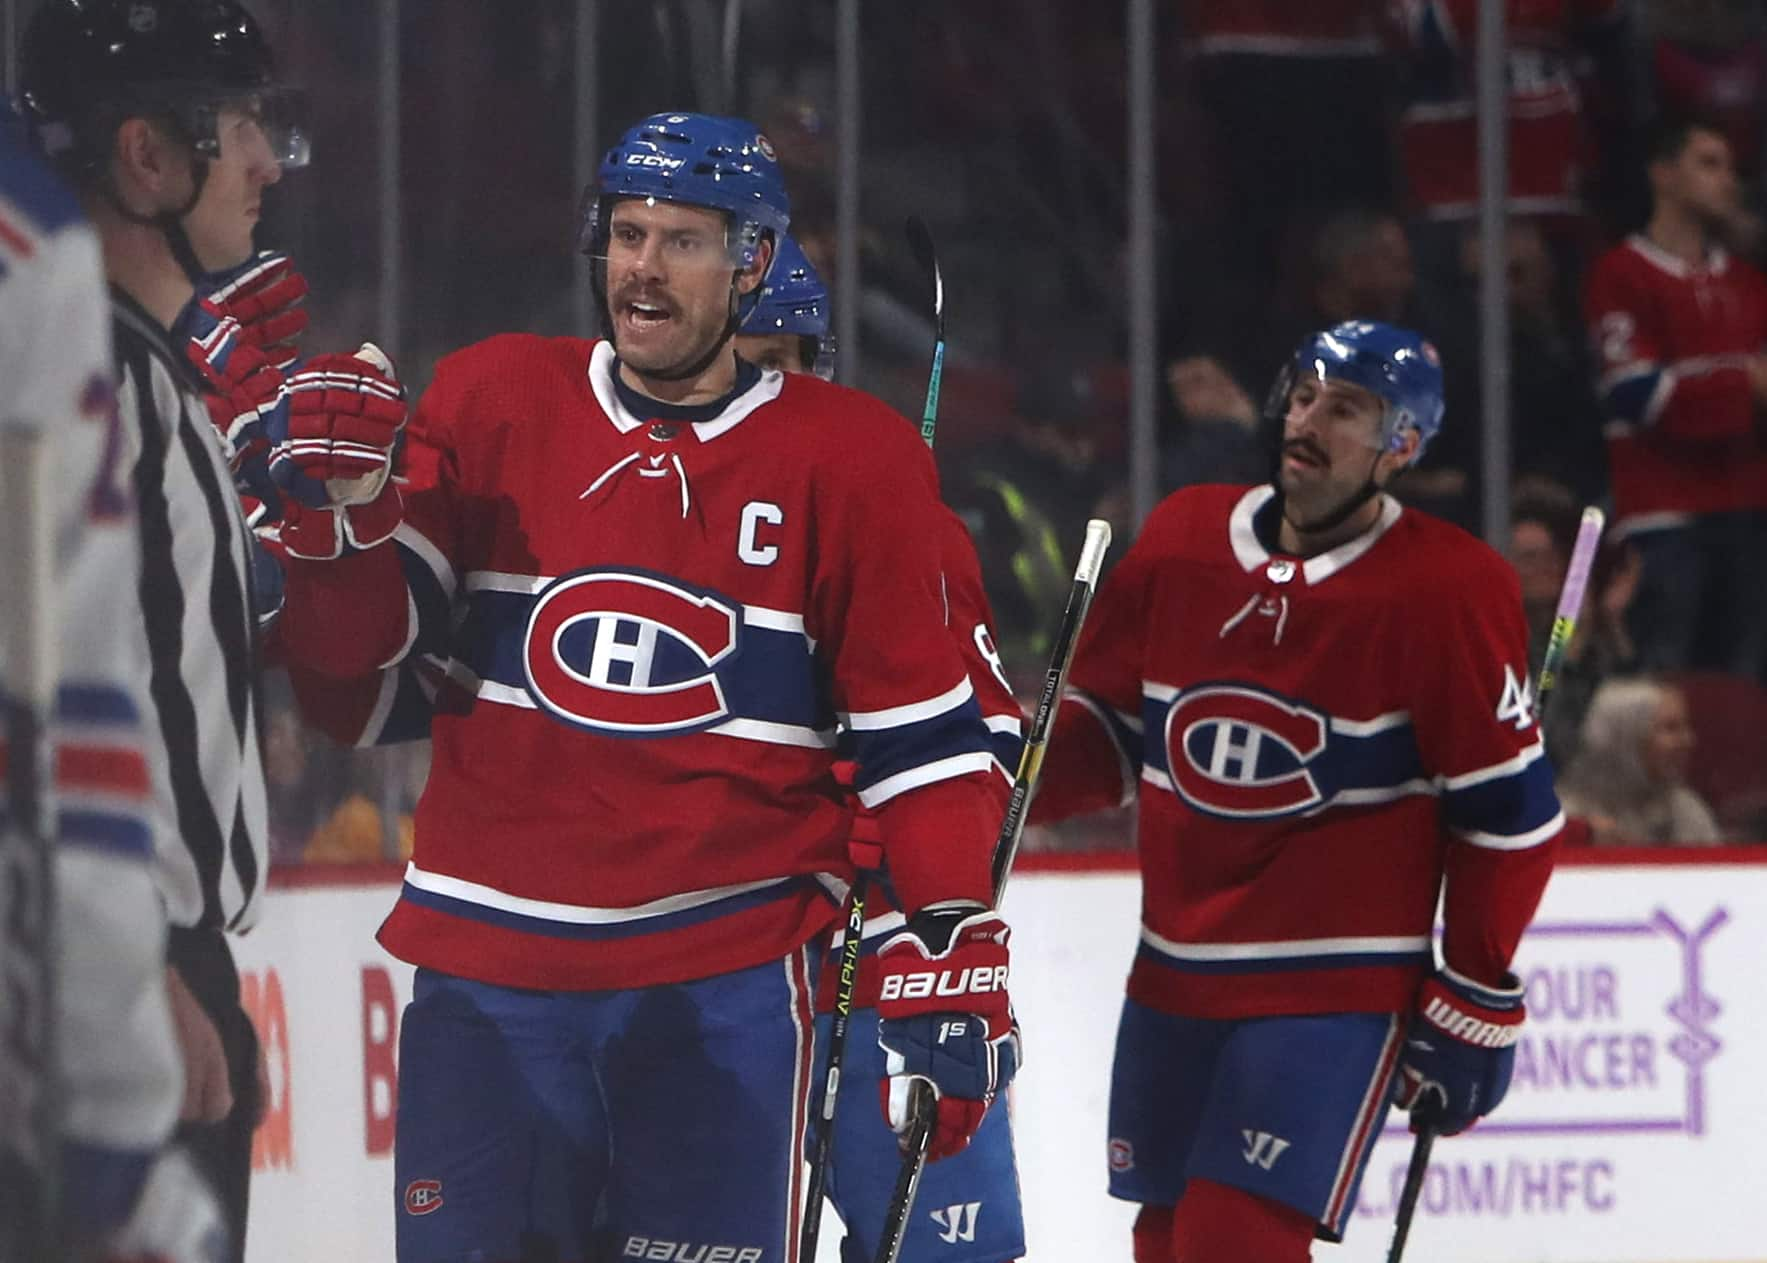 NHL Roundup: Shea Weber's career in jeopardy; Brando Carlo signs new deal; teams prep for expansion; trade rumors and more